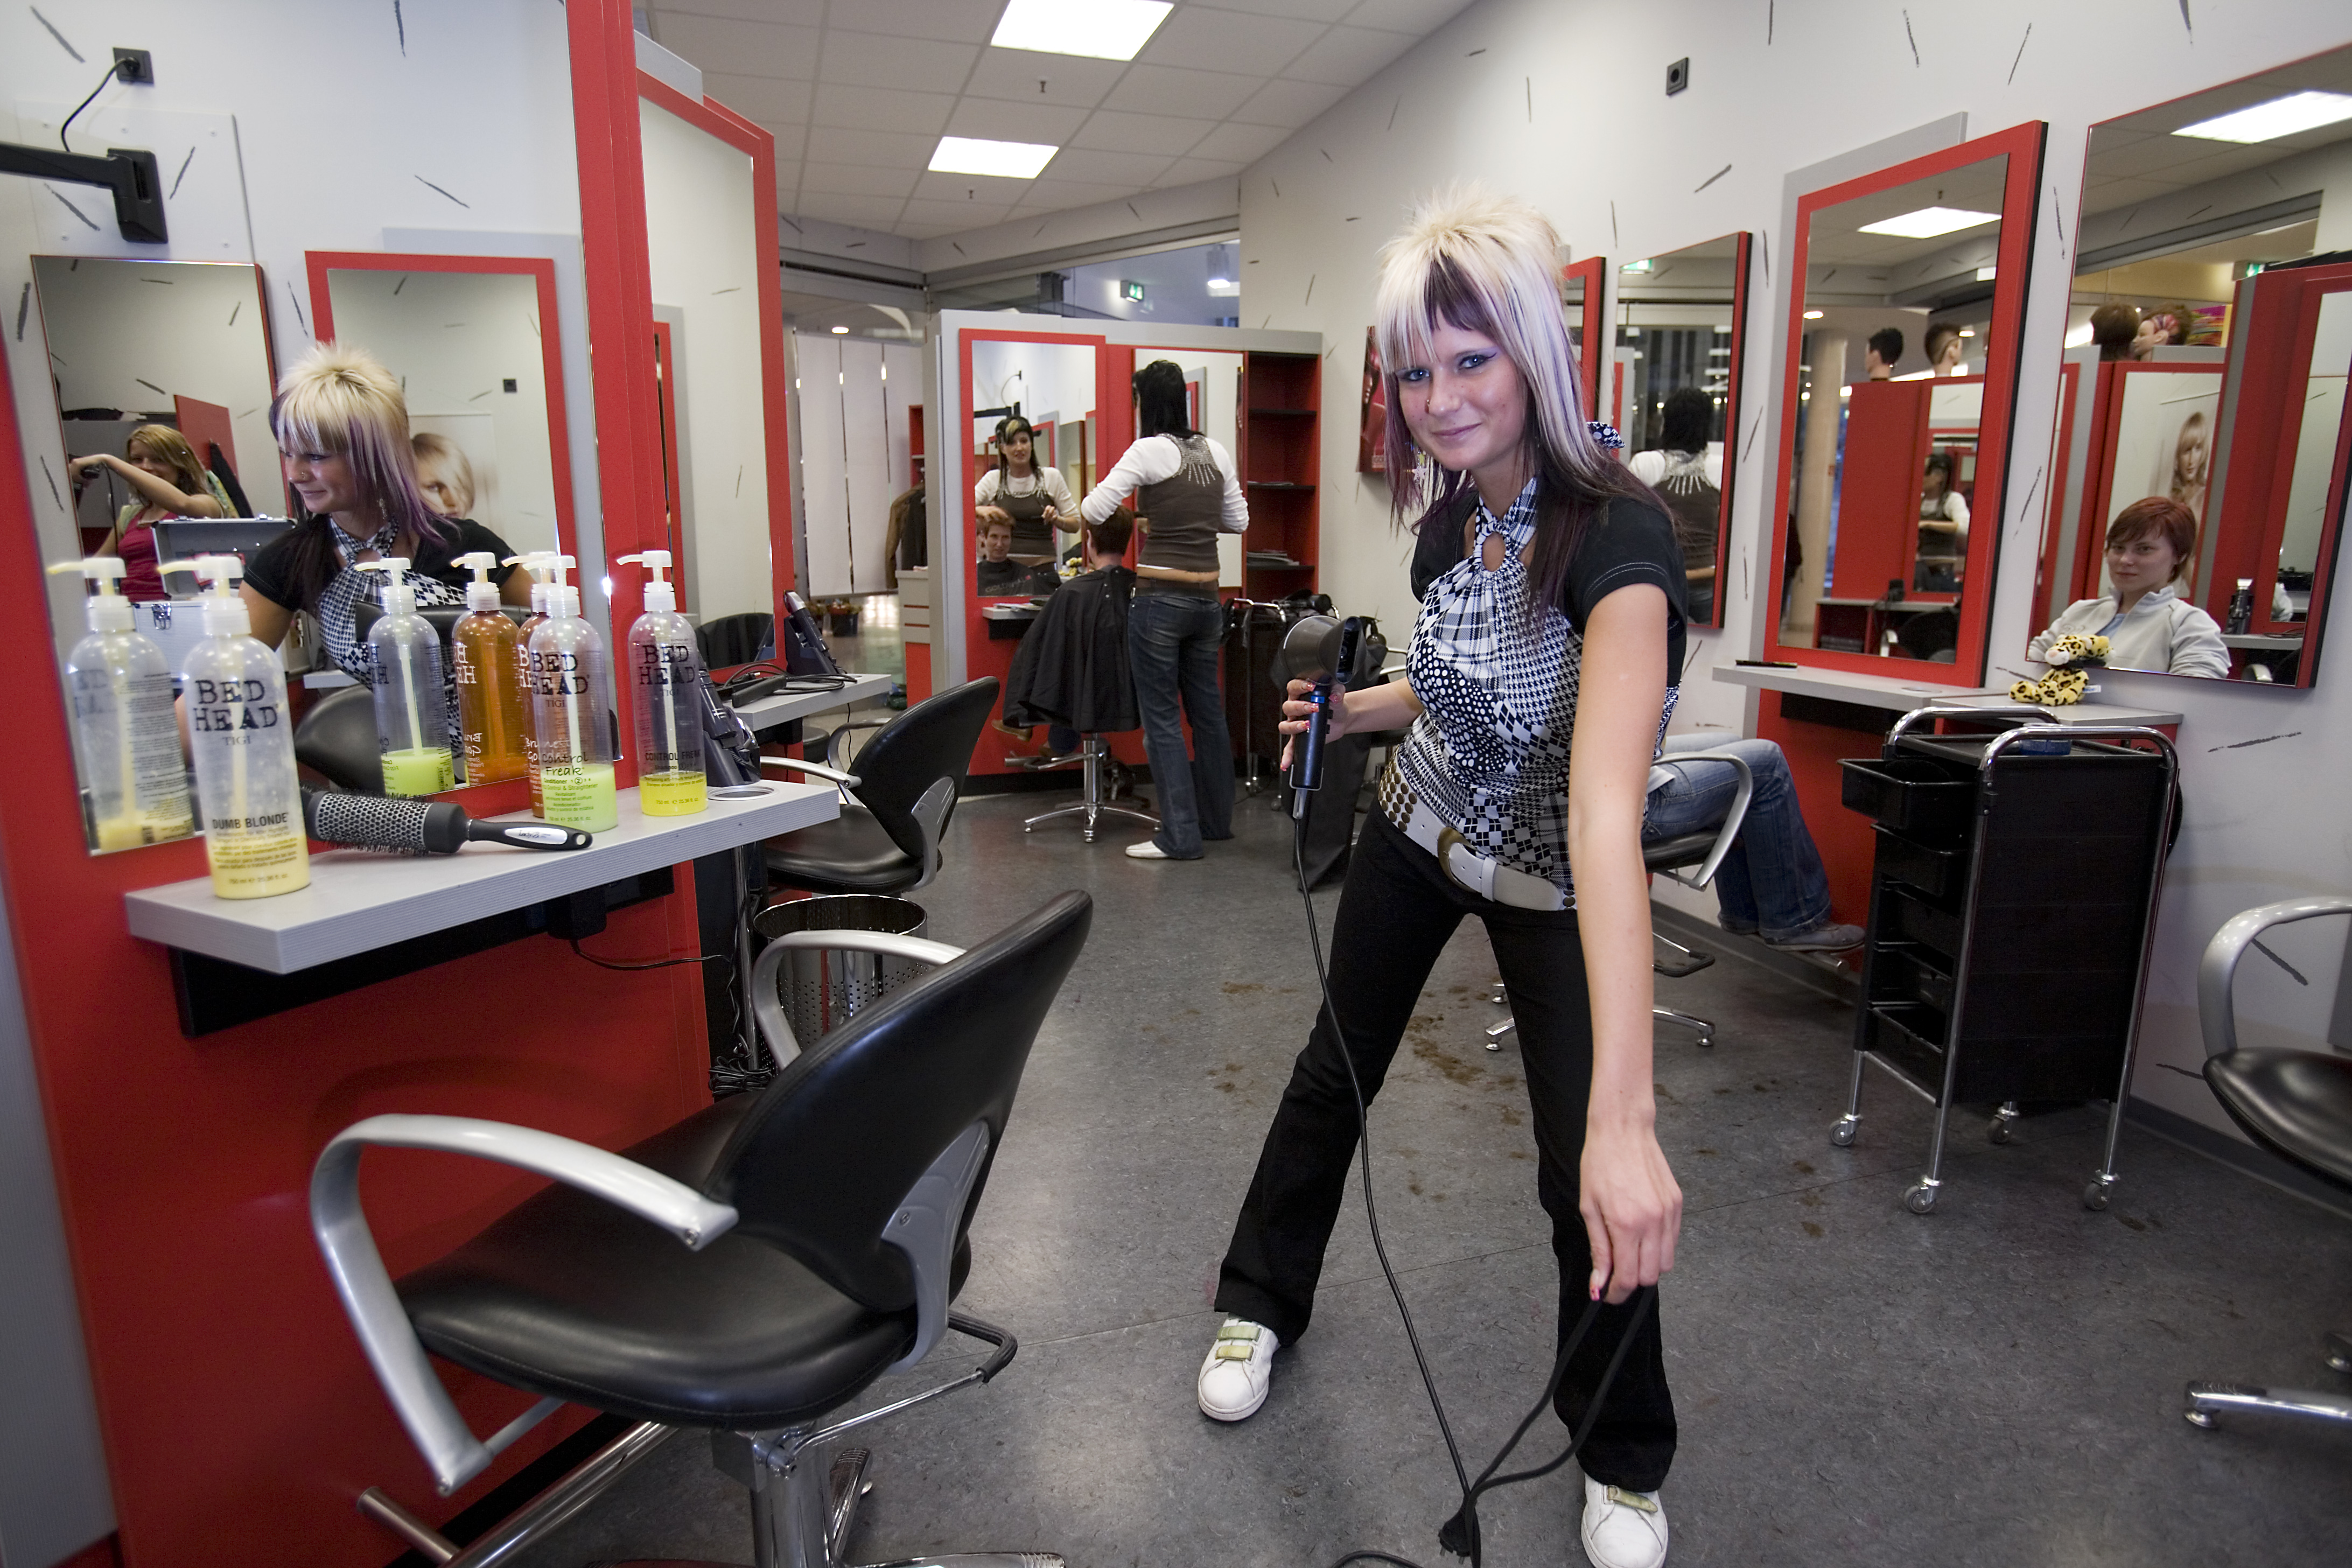 ethical issues for a hair salon Arrives at the salon, she learns the employees did not record her appointment and has to wait an hour for the next available stylist cynthia, the salon owner, decides to try to save money by lowering the quality of the hair care.